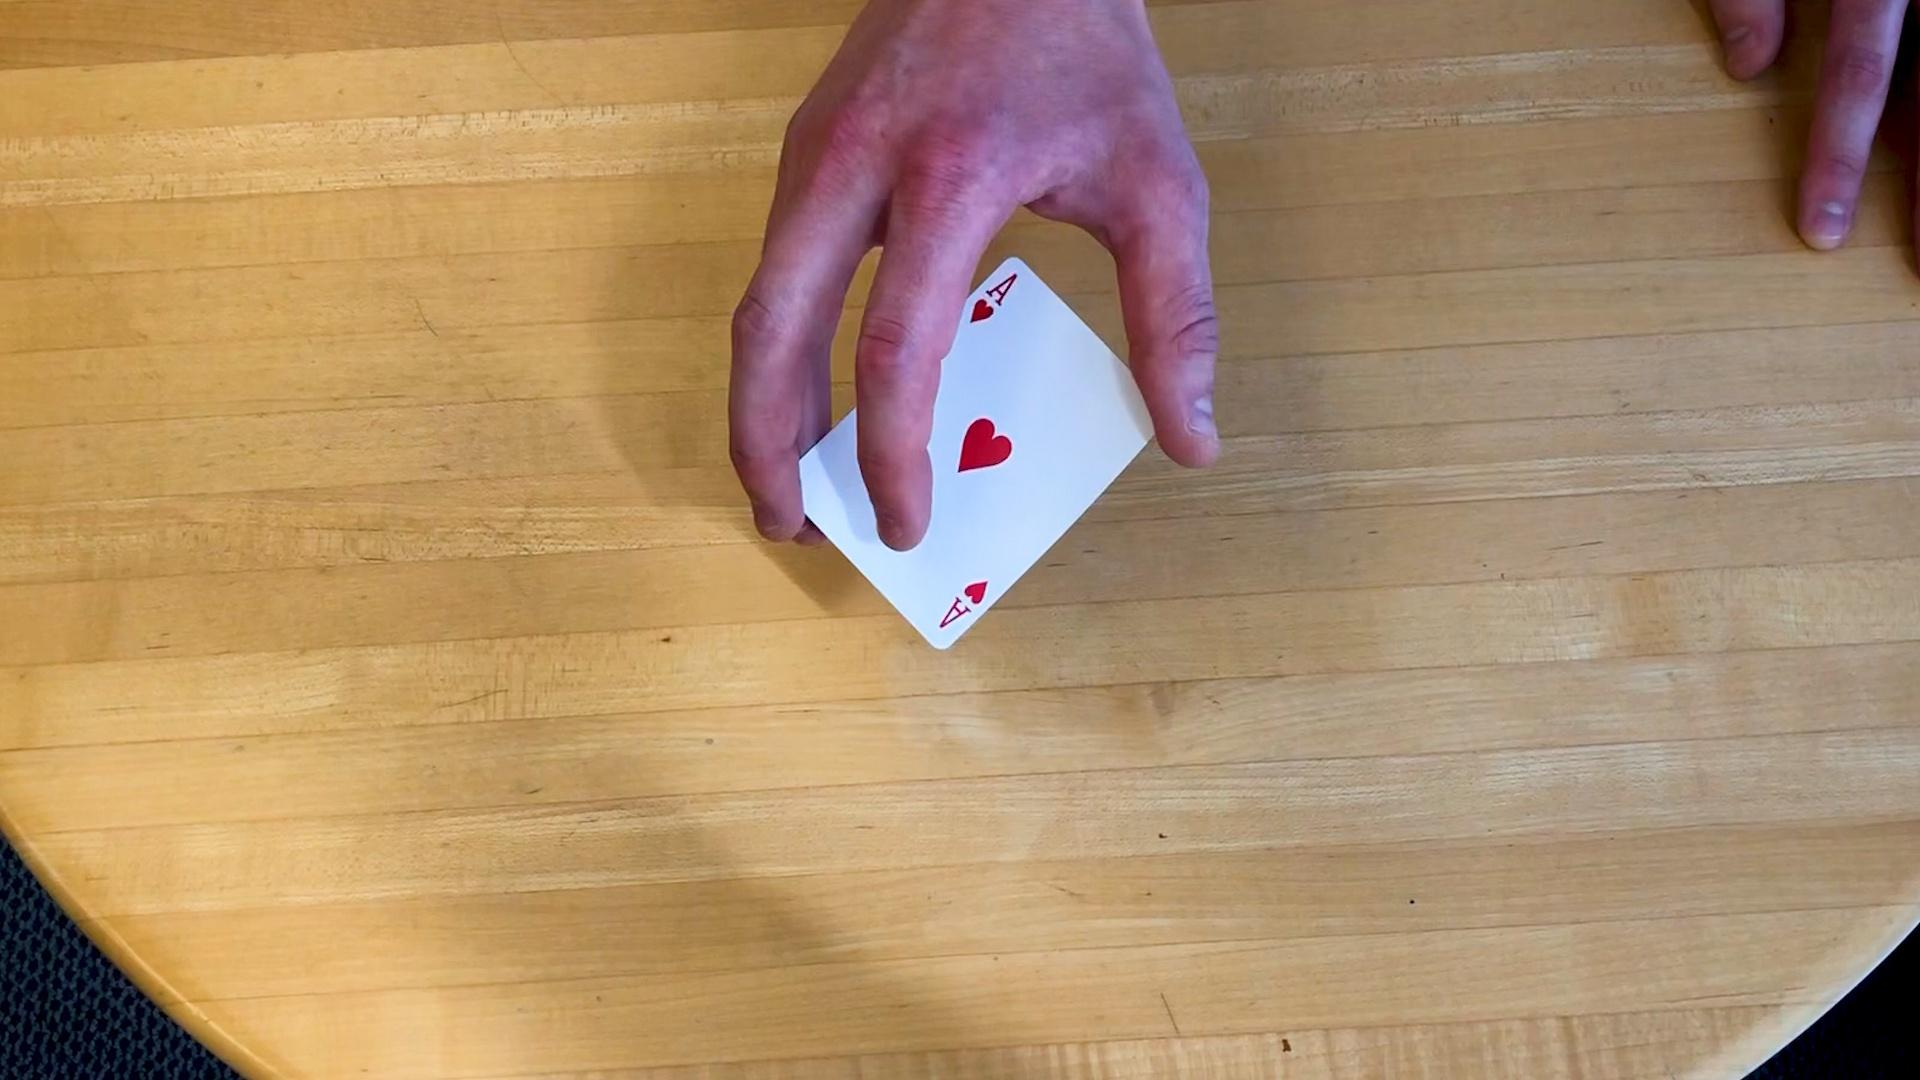 The Science Behind This Slight of Hand Hero